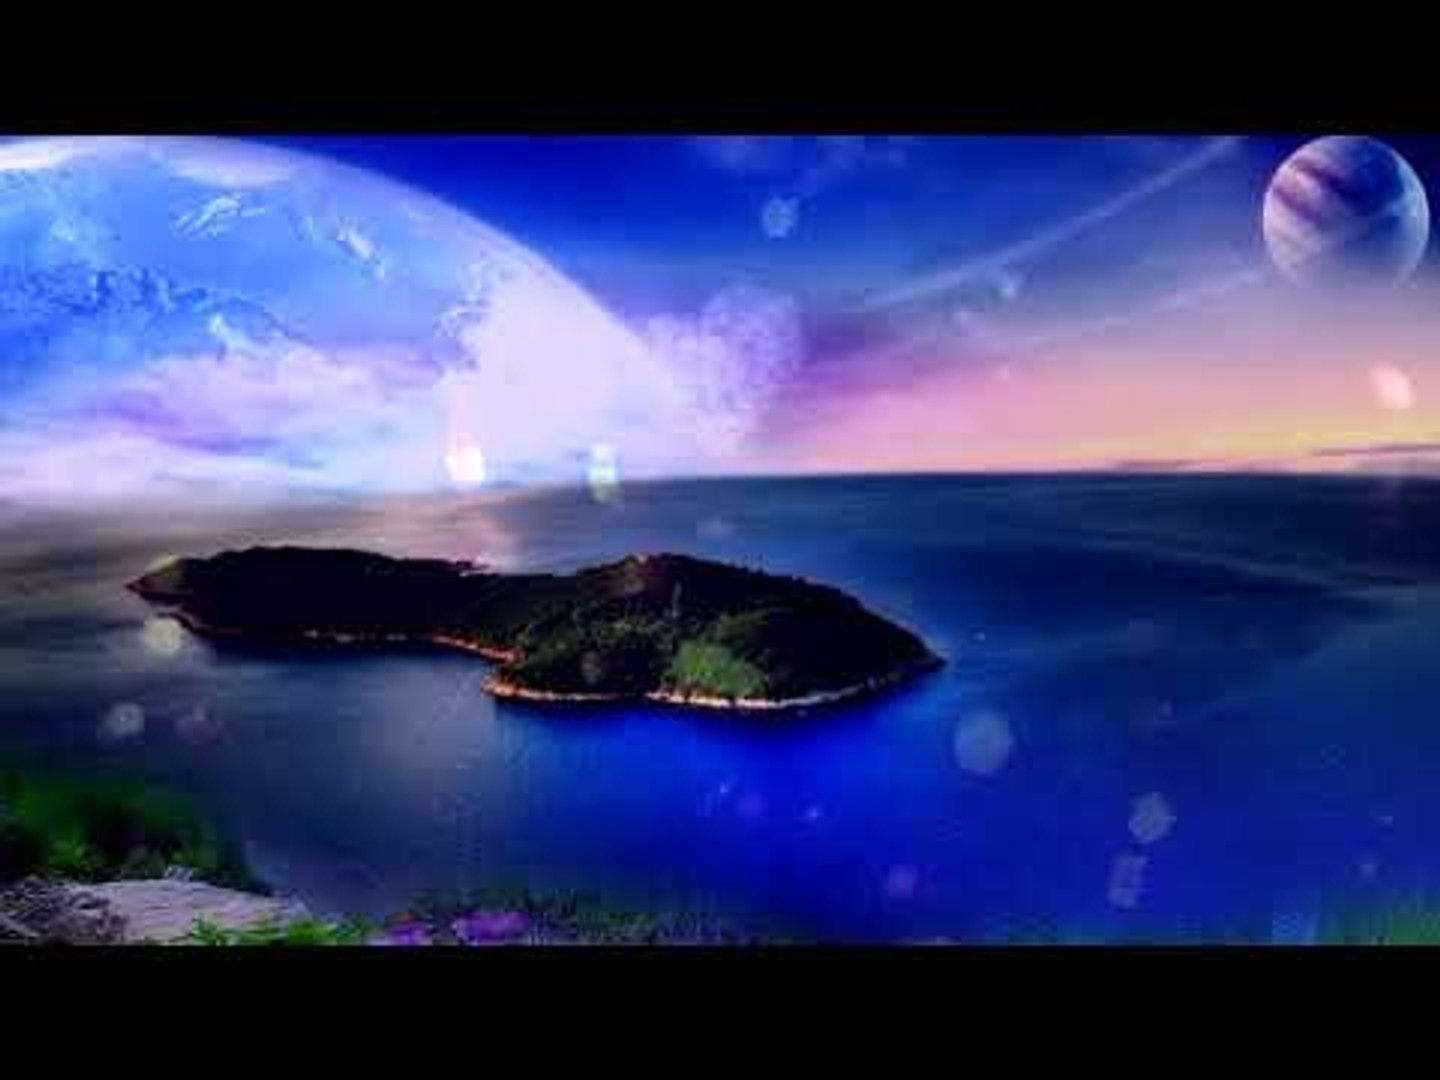 Electronic Meditation Music - Meditation Music for Concentration, Relaxation Music